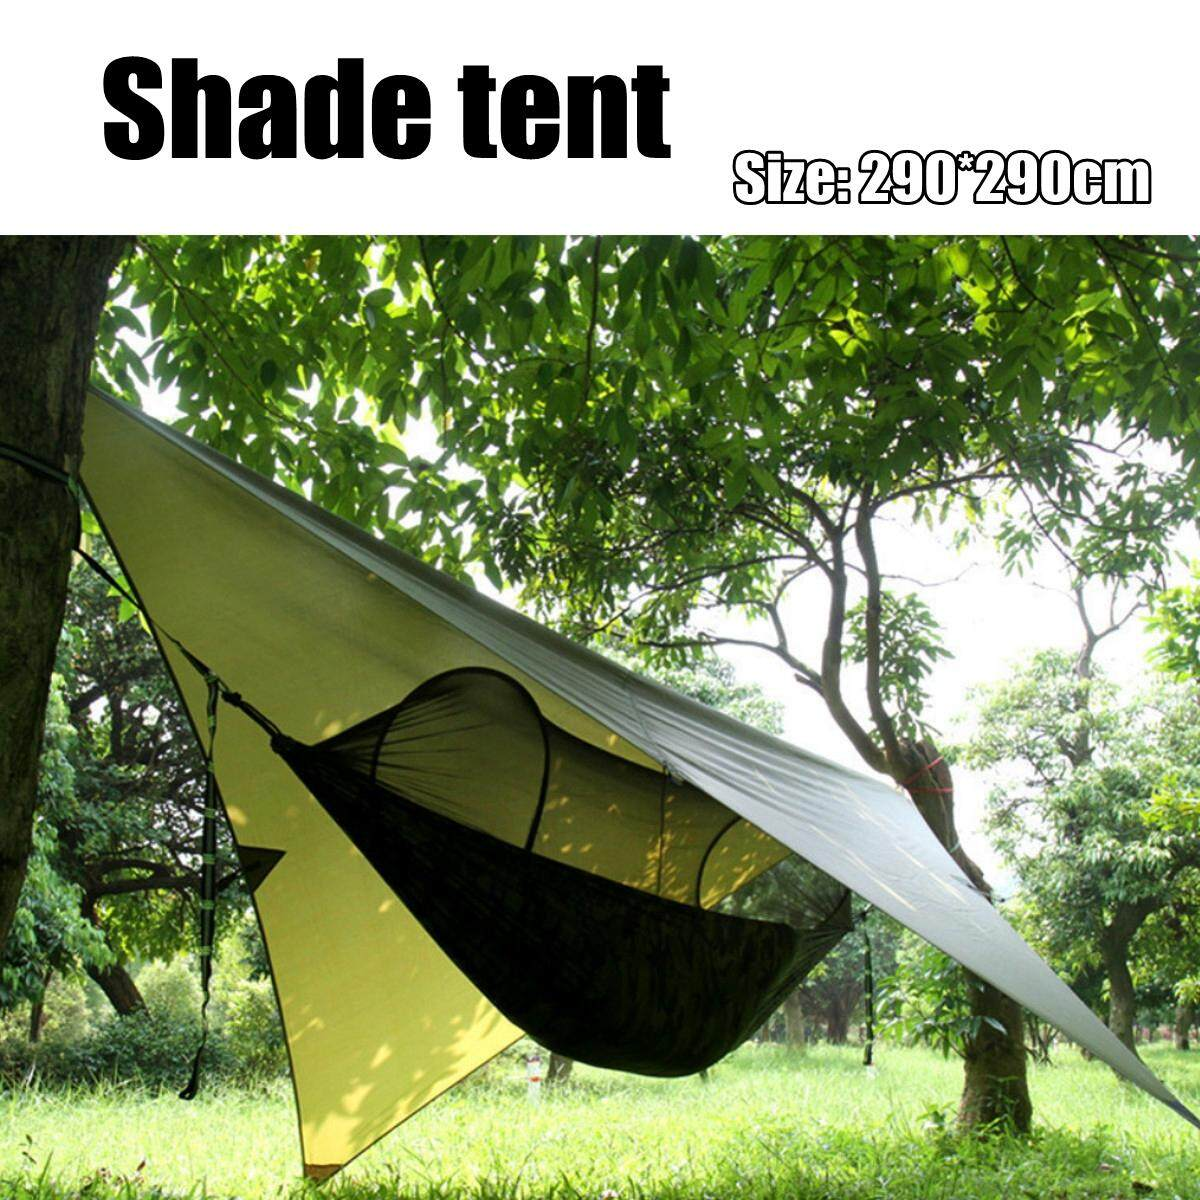 Portable High Strength Parachute Fabric Camping Hammock Hanging Bed With Mosquito Net Sleeping tent outdoor tent